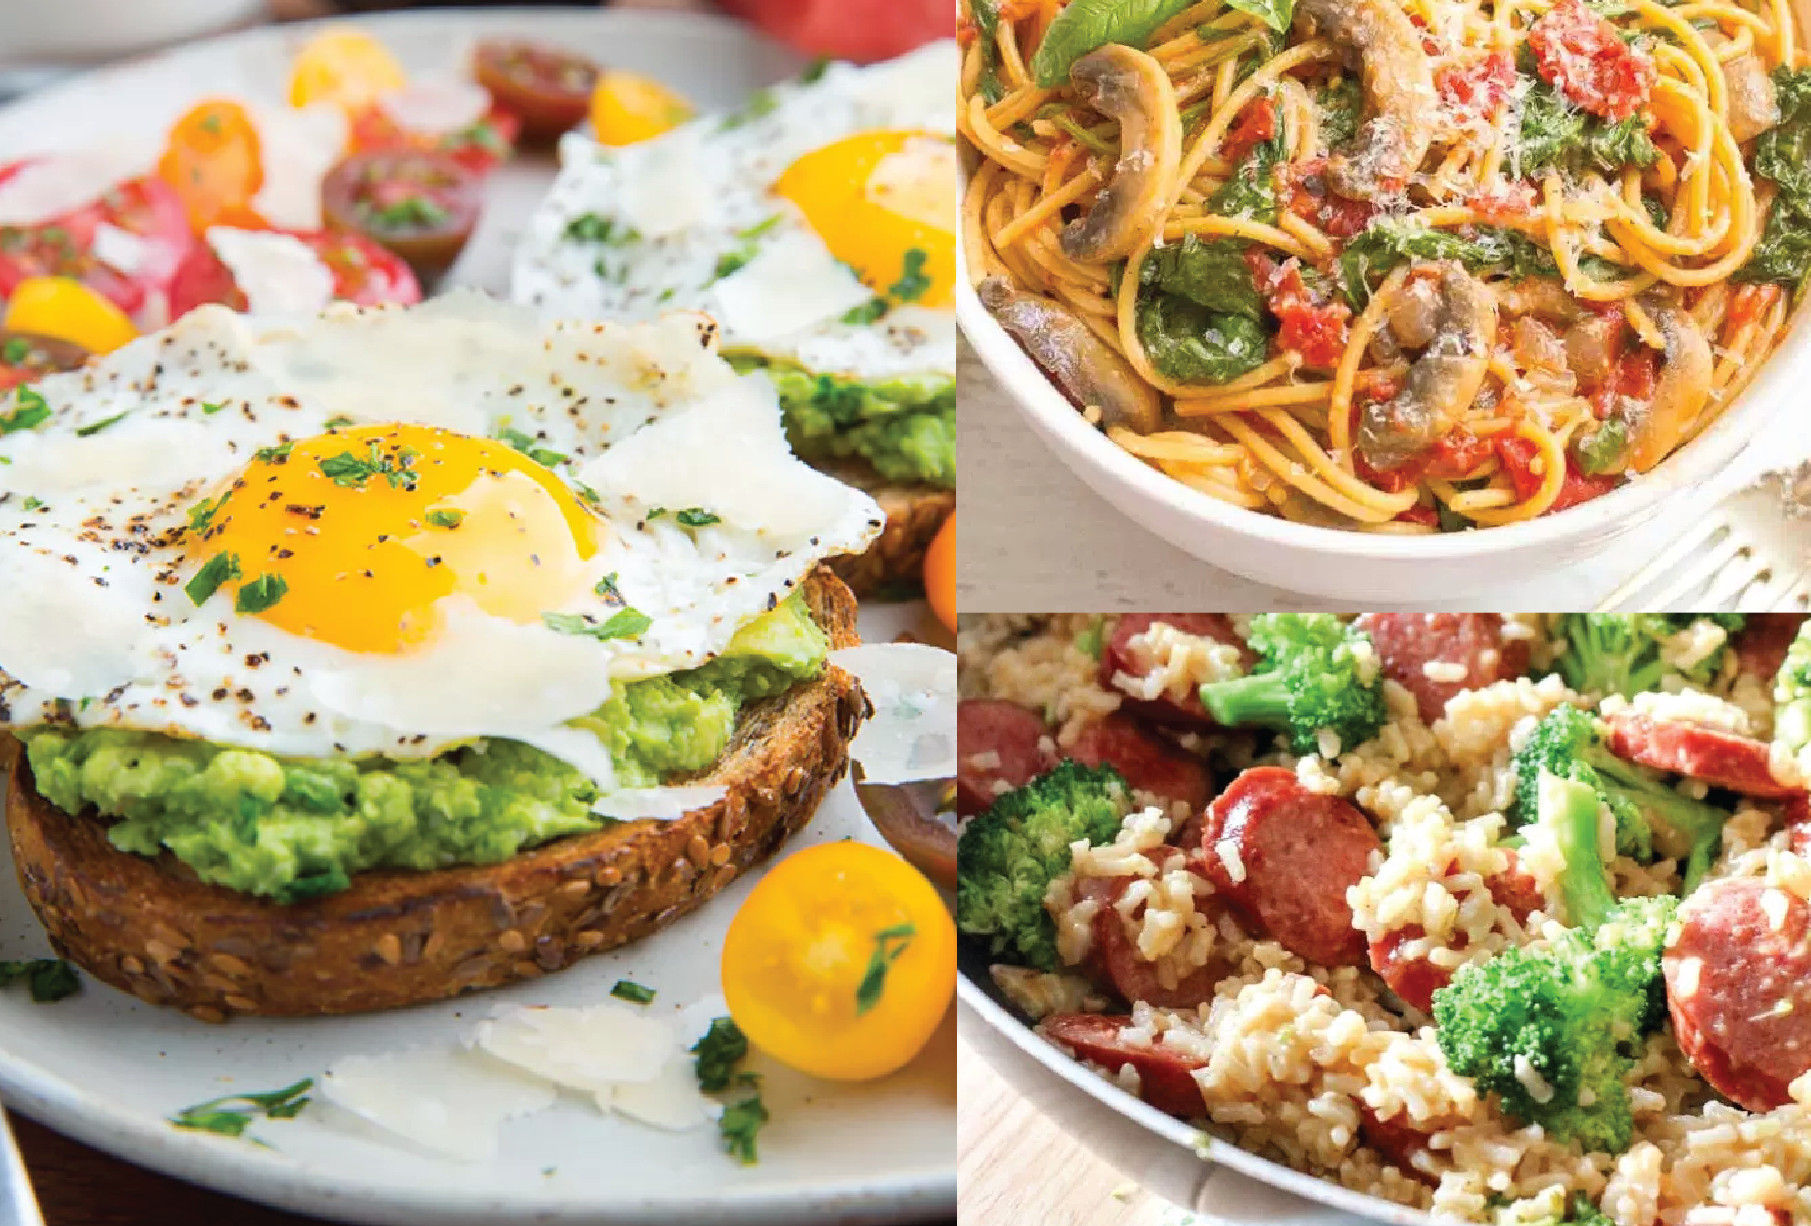 Healthy Dinners To Make At Home  35 Cheap Bud Friendly Meals To Feed The Family for